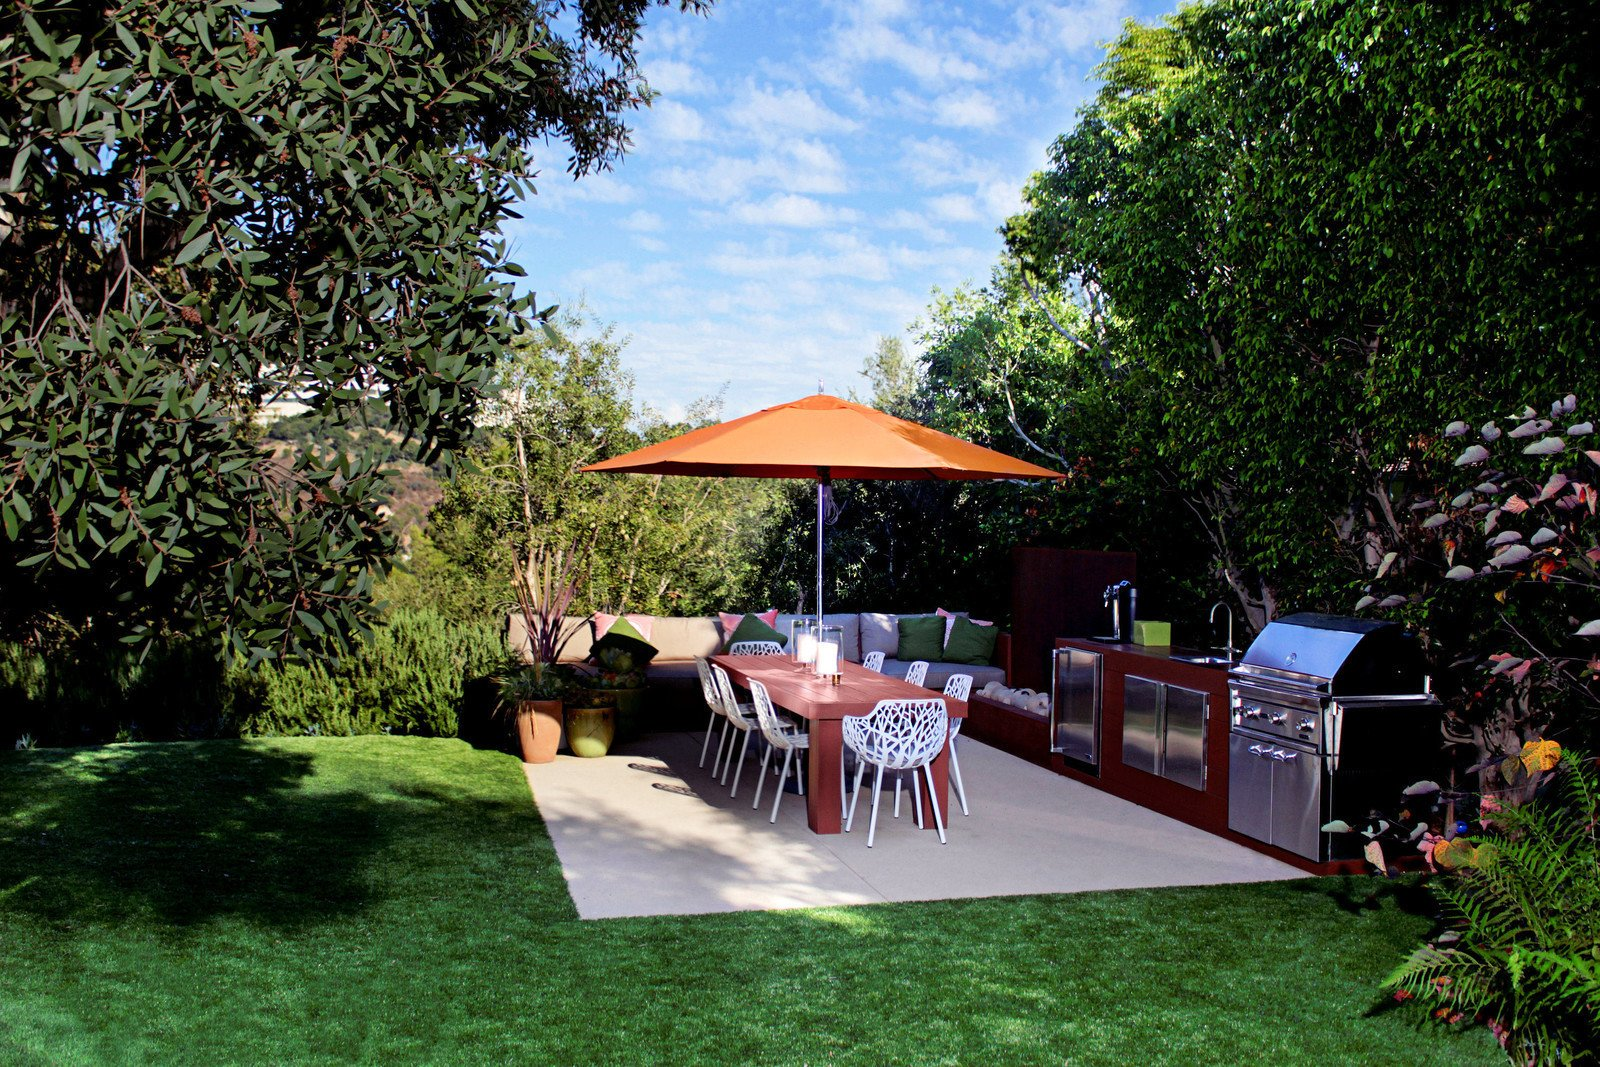 Photo 3 of 8 in 7 Steps to Creating Your Own Outdoor Barbecue Area For Summer Entertaining